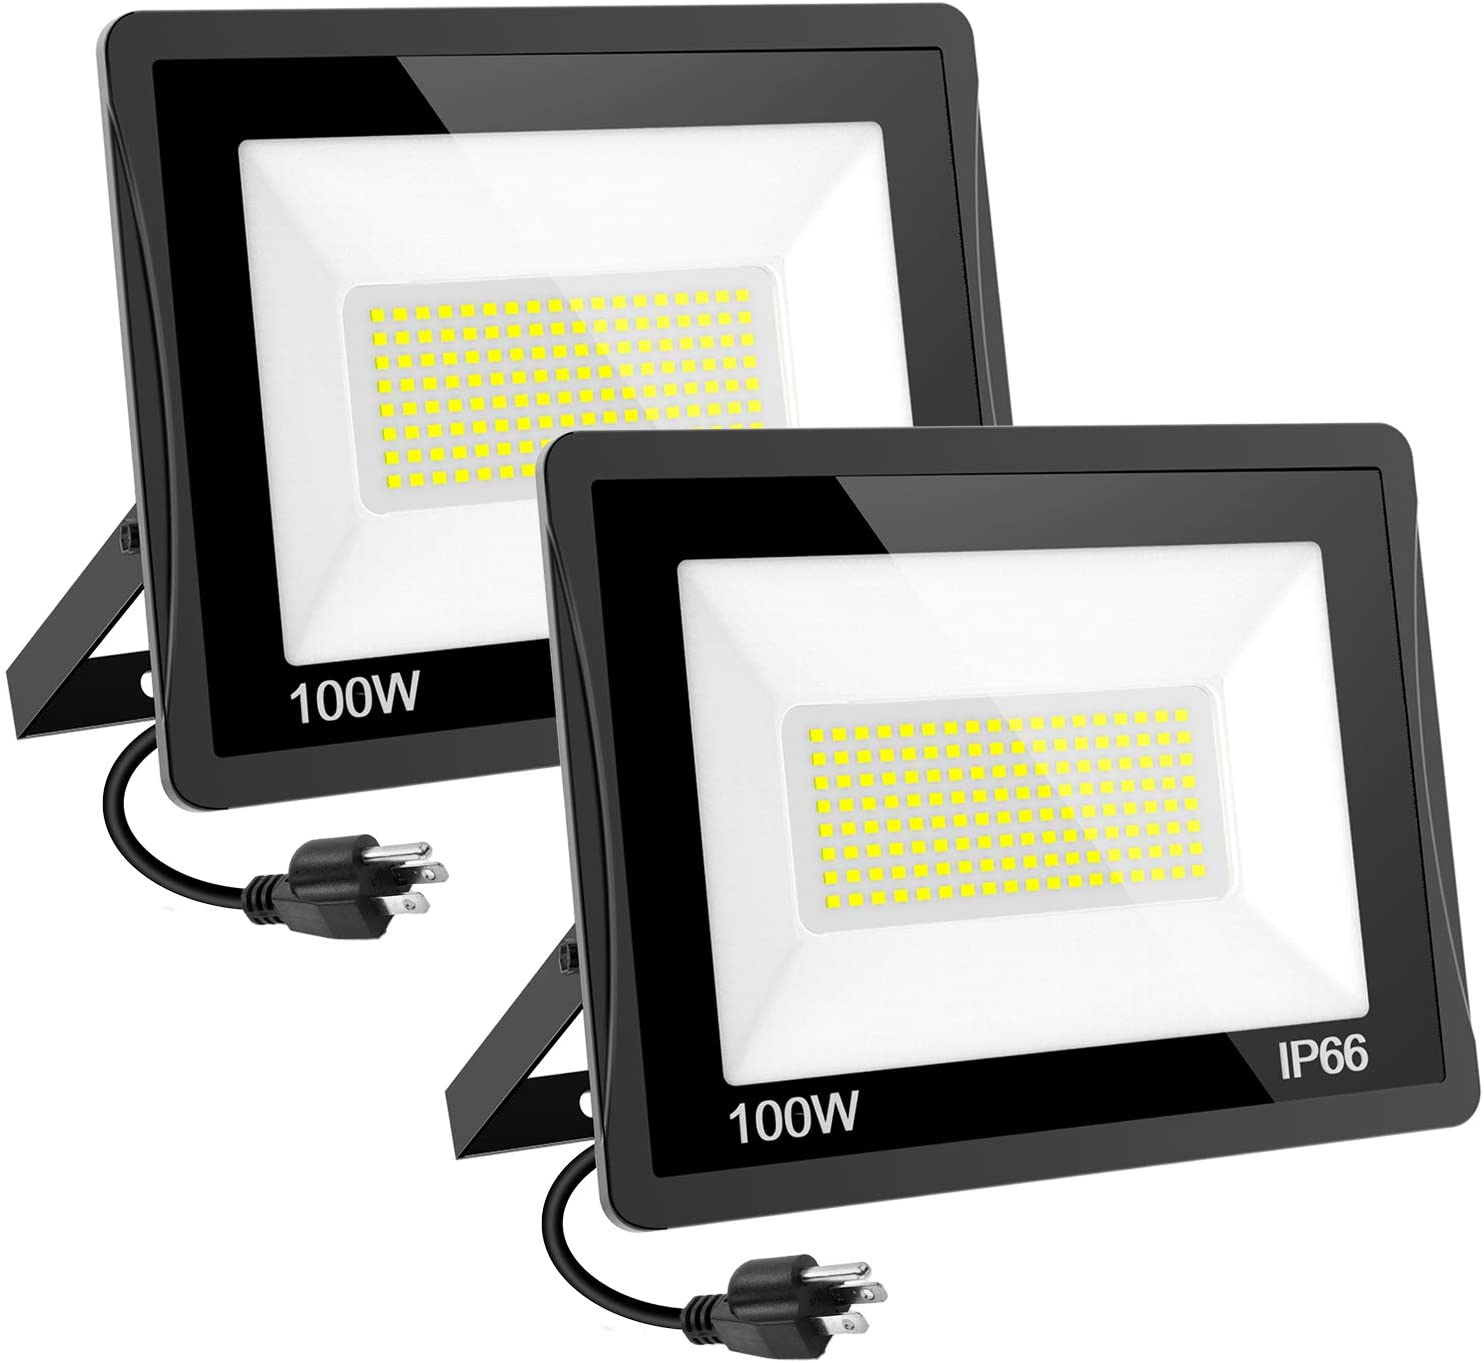 100W LED Flood Light, T-SUNUS Super Bright Security Lights, IP65 Waterproof 10000LM Work Light with Plug, 6000K Daylight White Outdoor Floodlights for Garden, Playground, Basketball Court 2 Pack